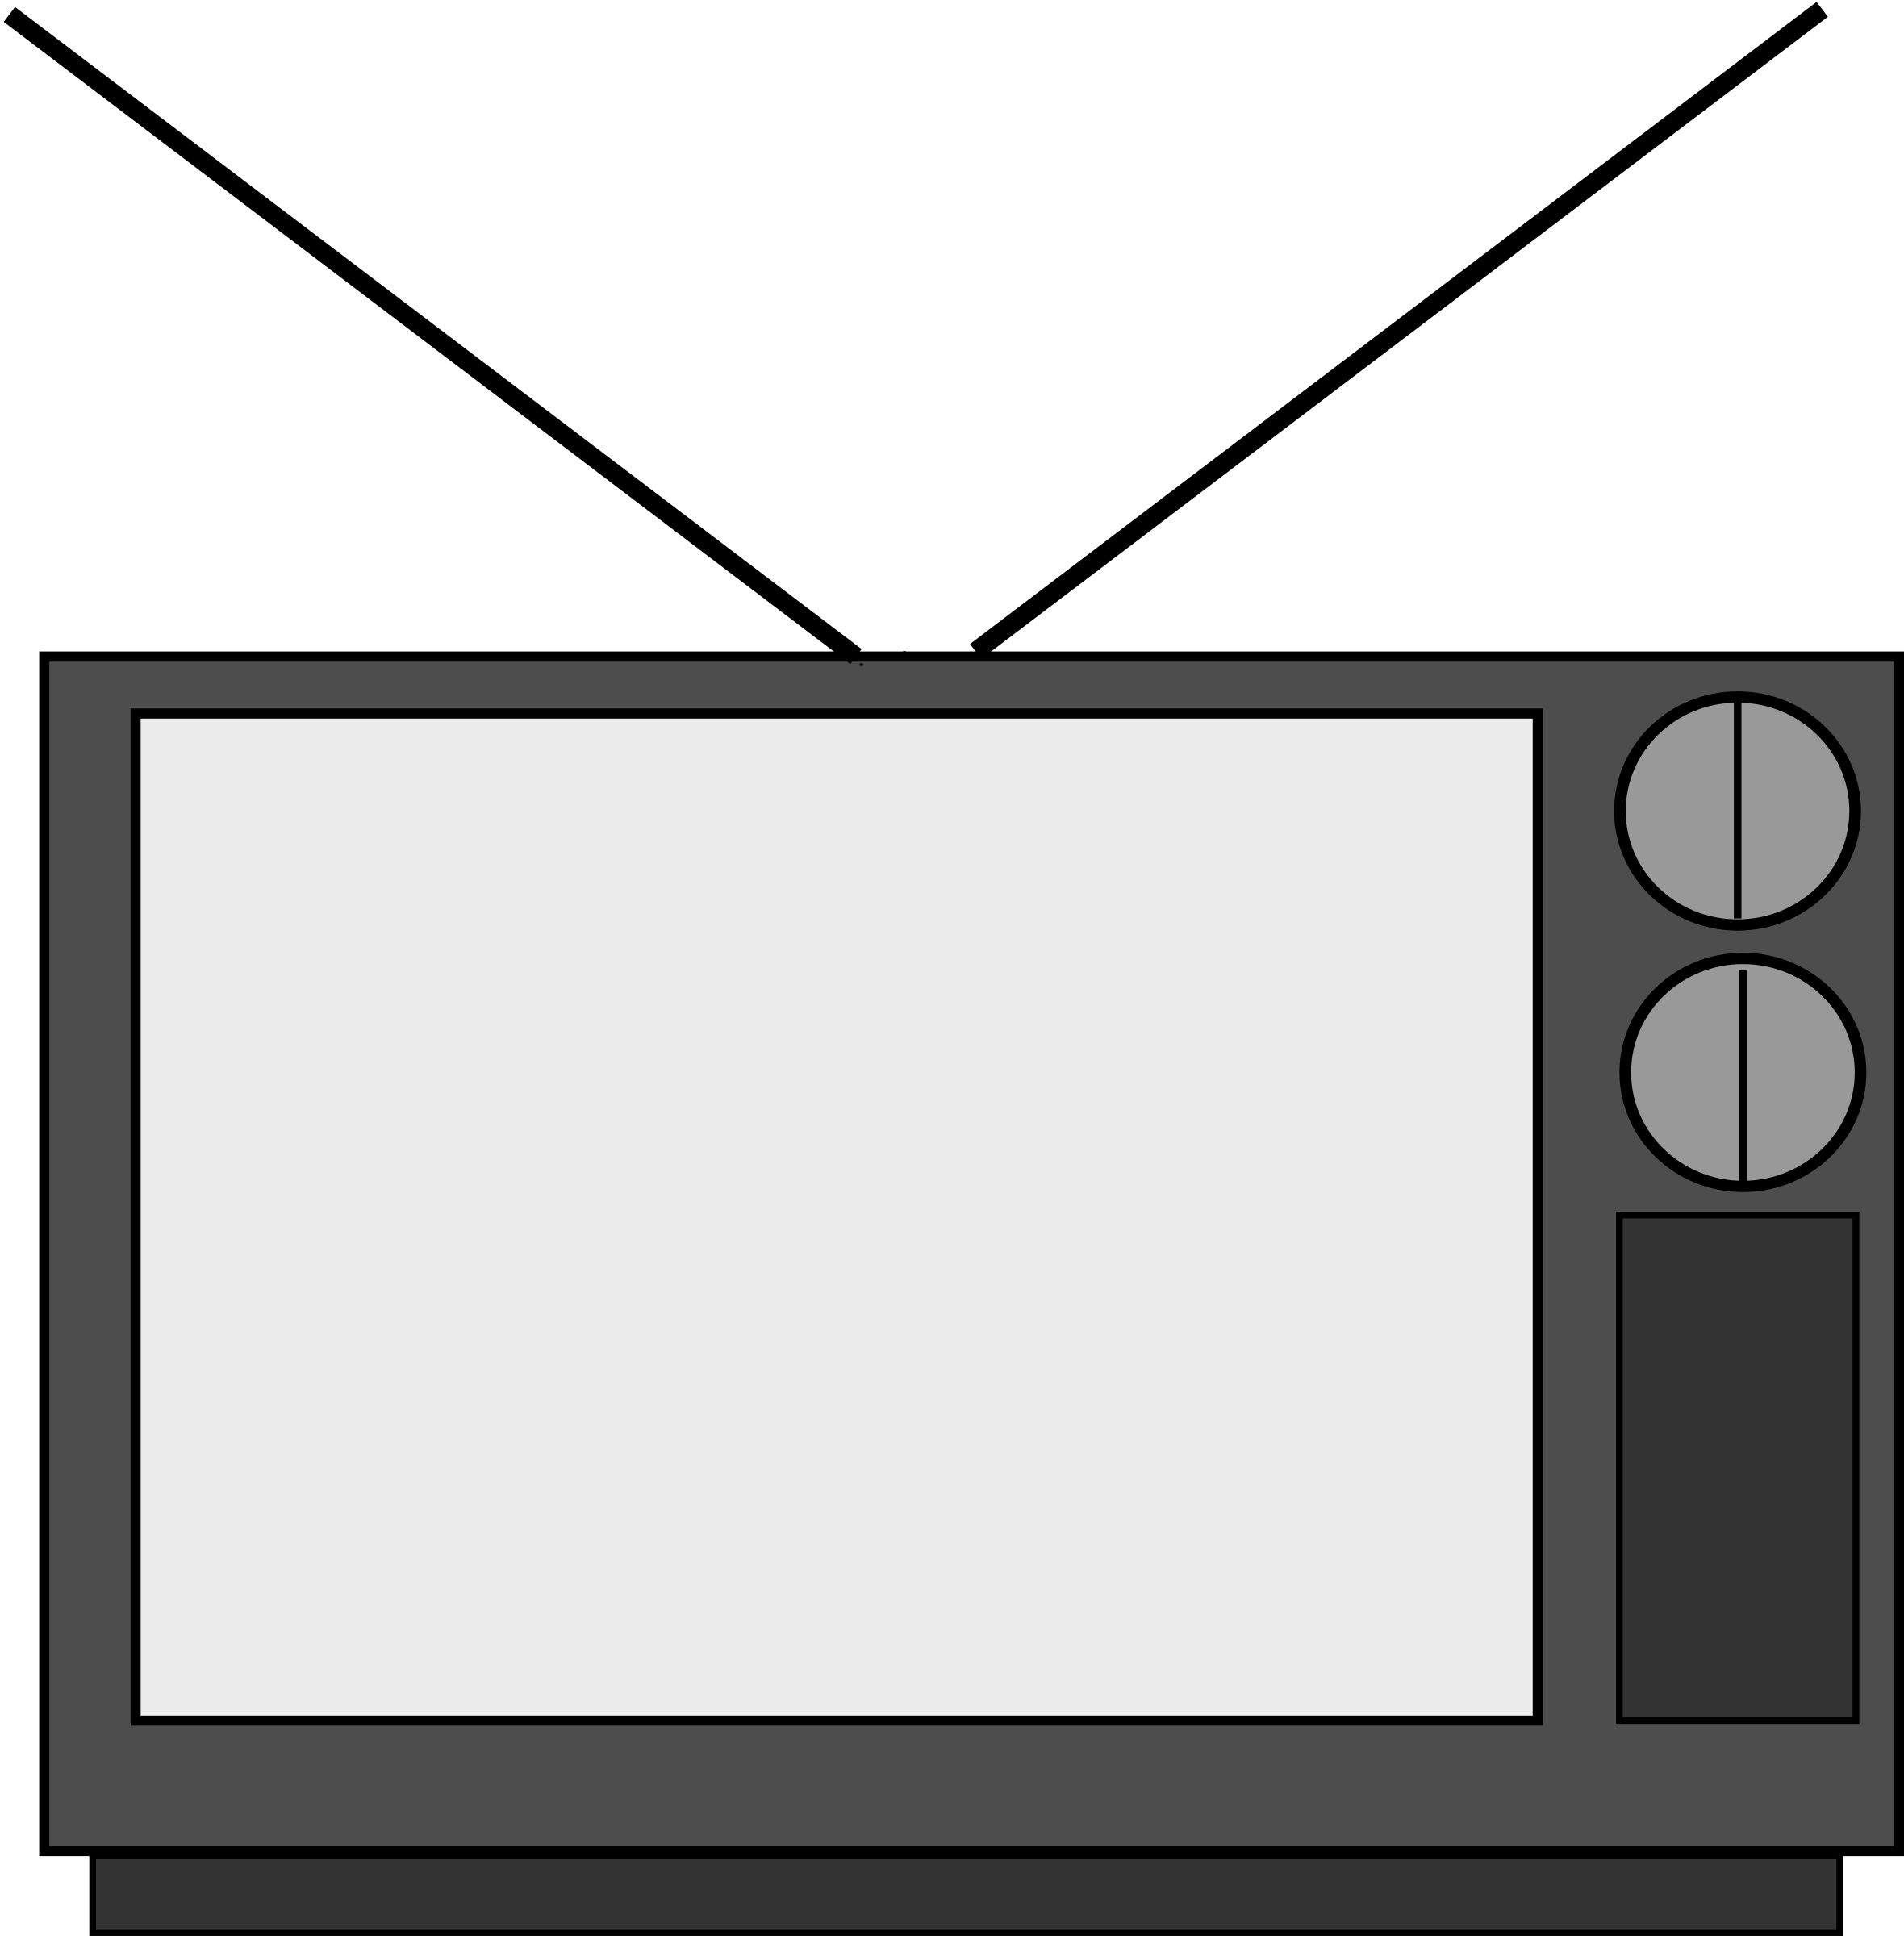 Television by schoolfreeware